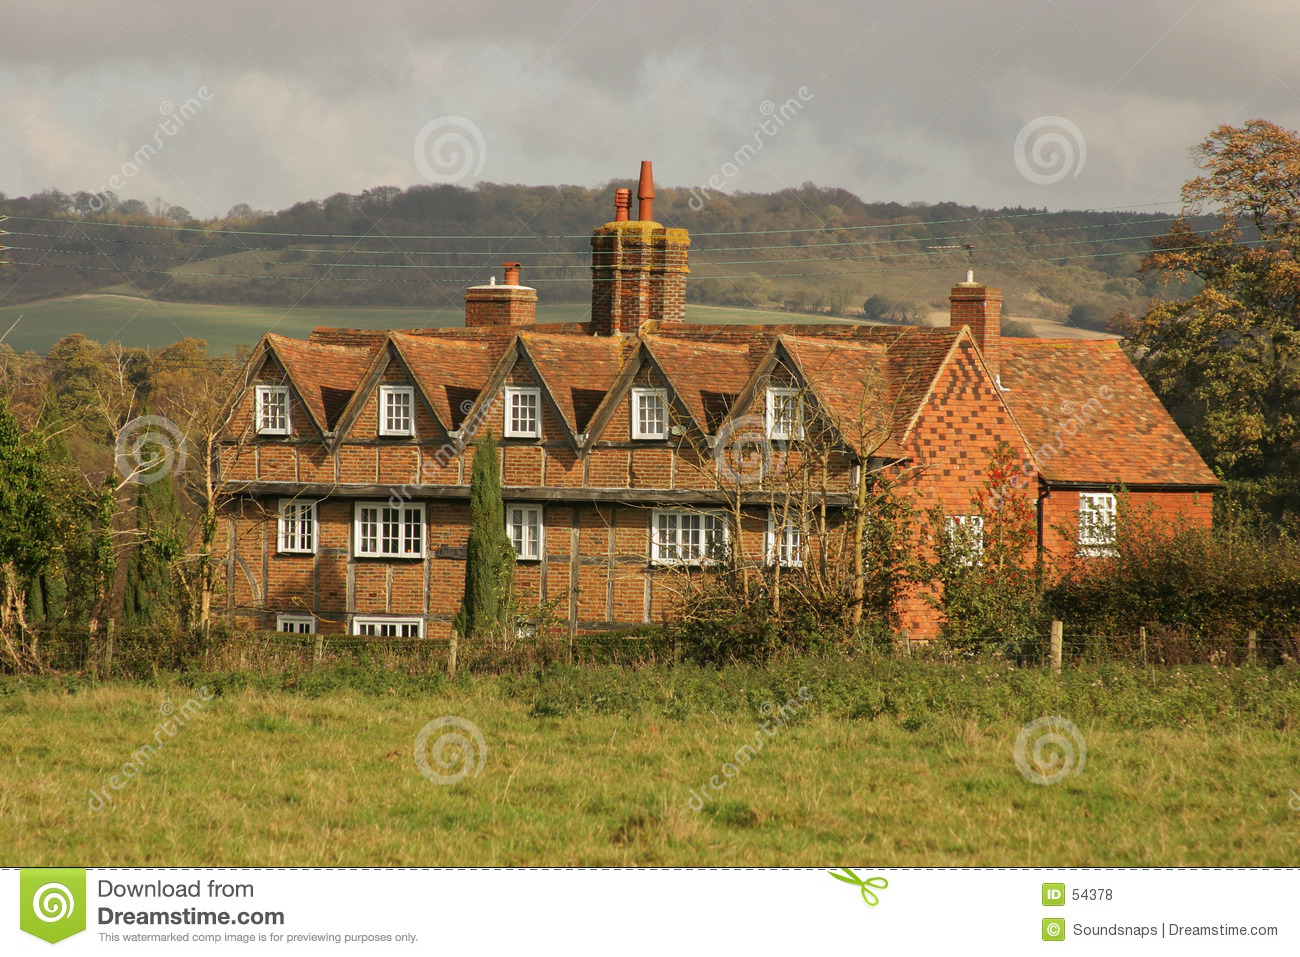 Maison de campagne anglaise photo stock image 54378 - Maison de campagne anglaise ...